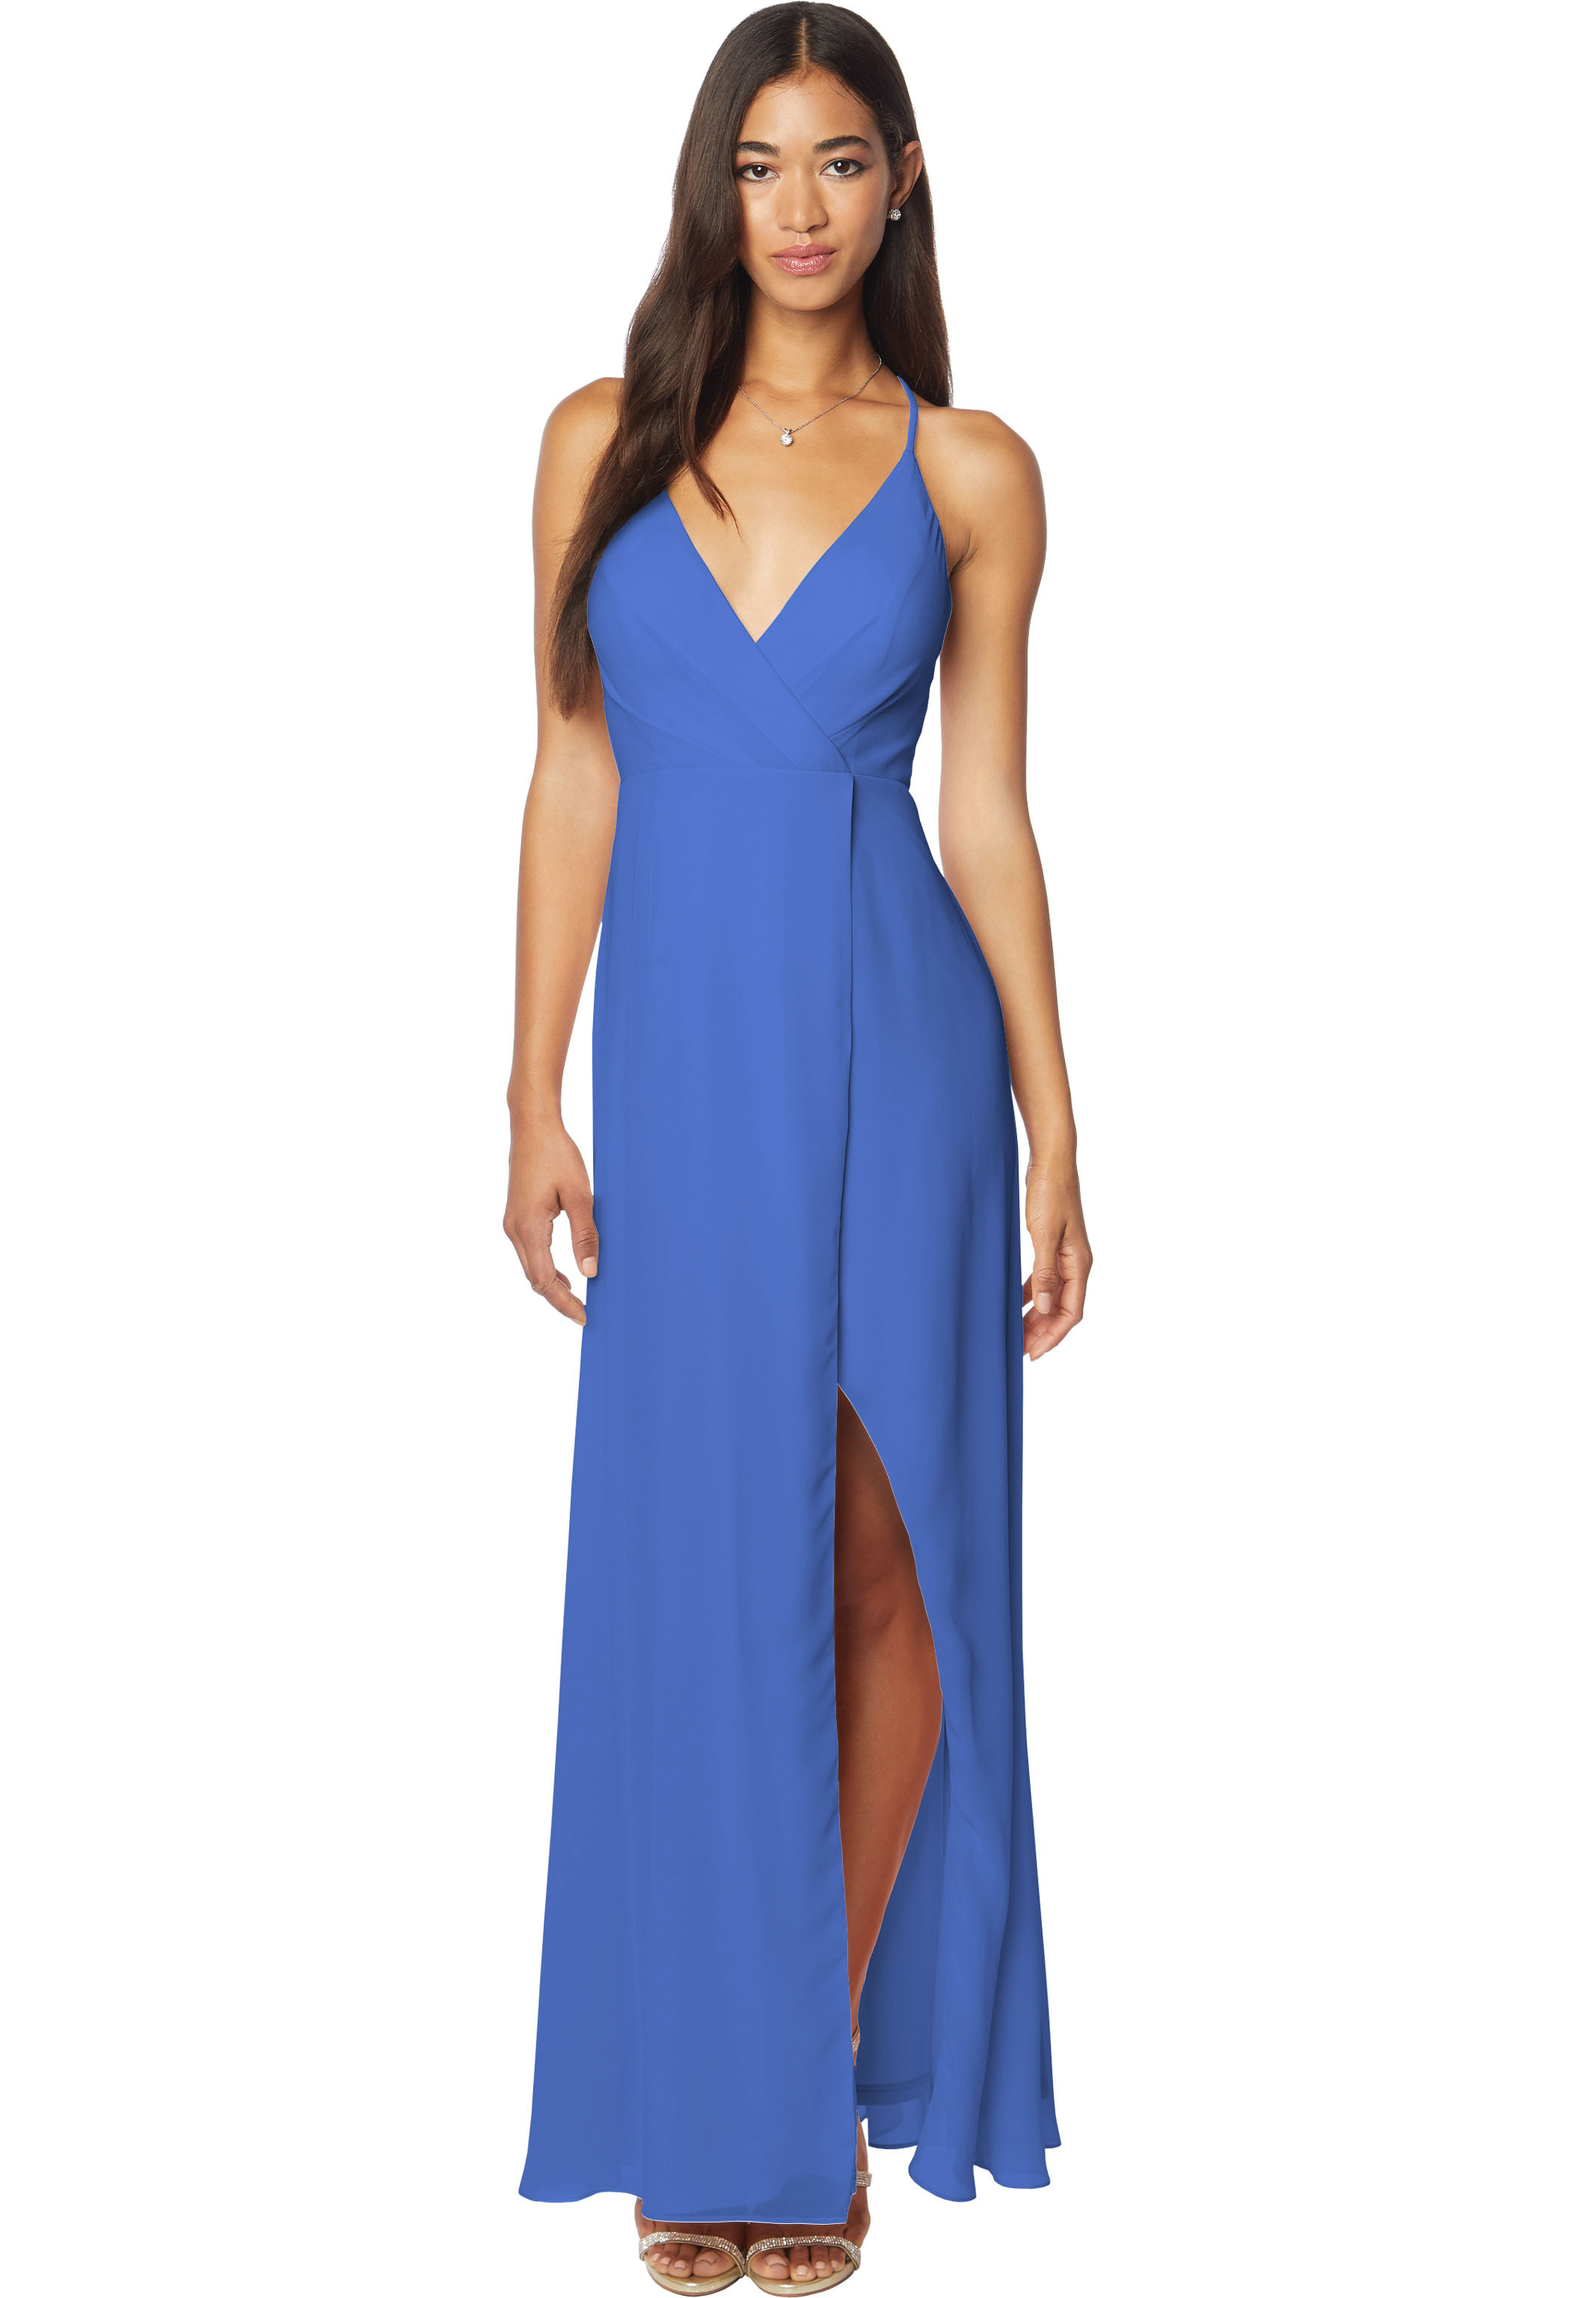 Bill Levkoff HORIZON Chiffon V-neck A-line gown, $170.00 Front